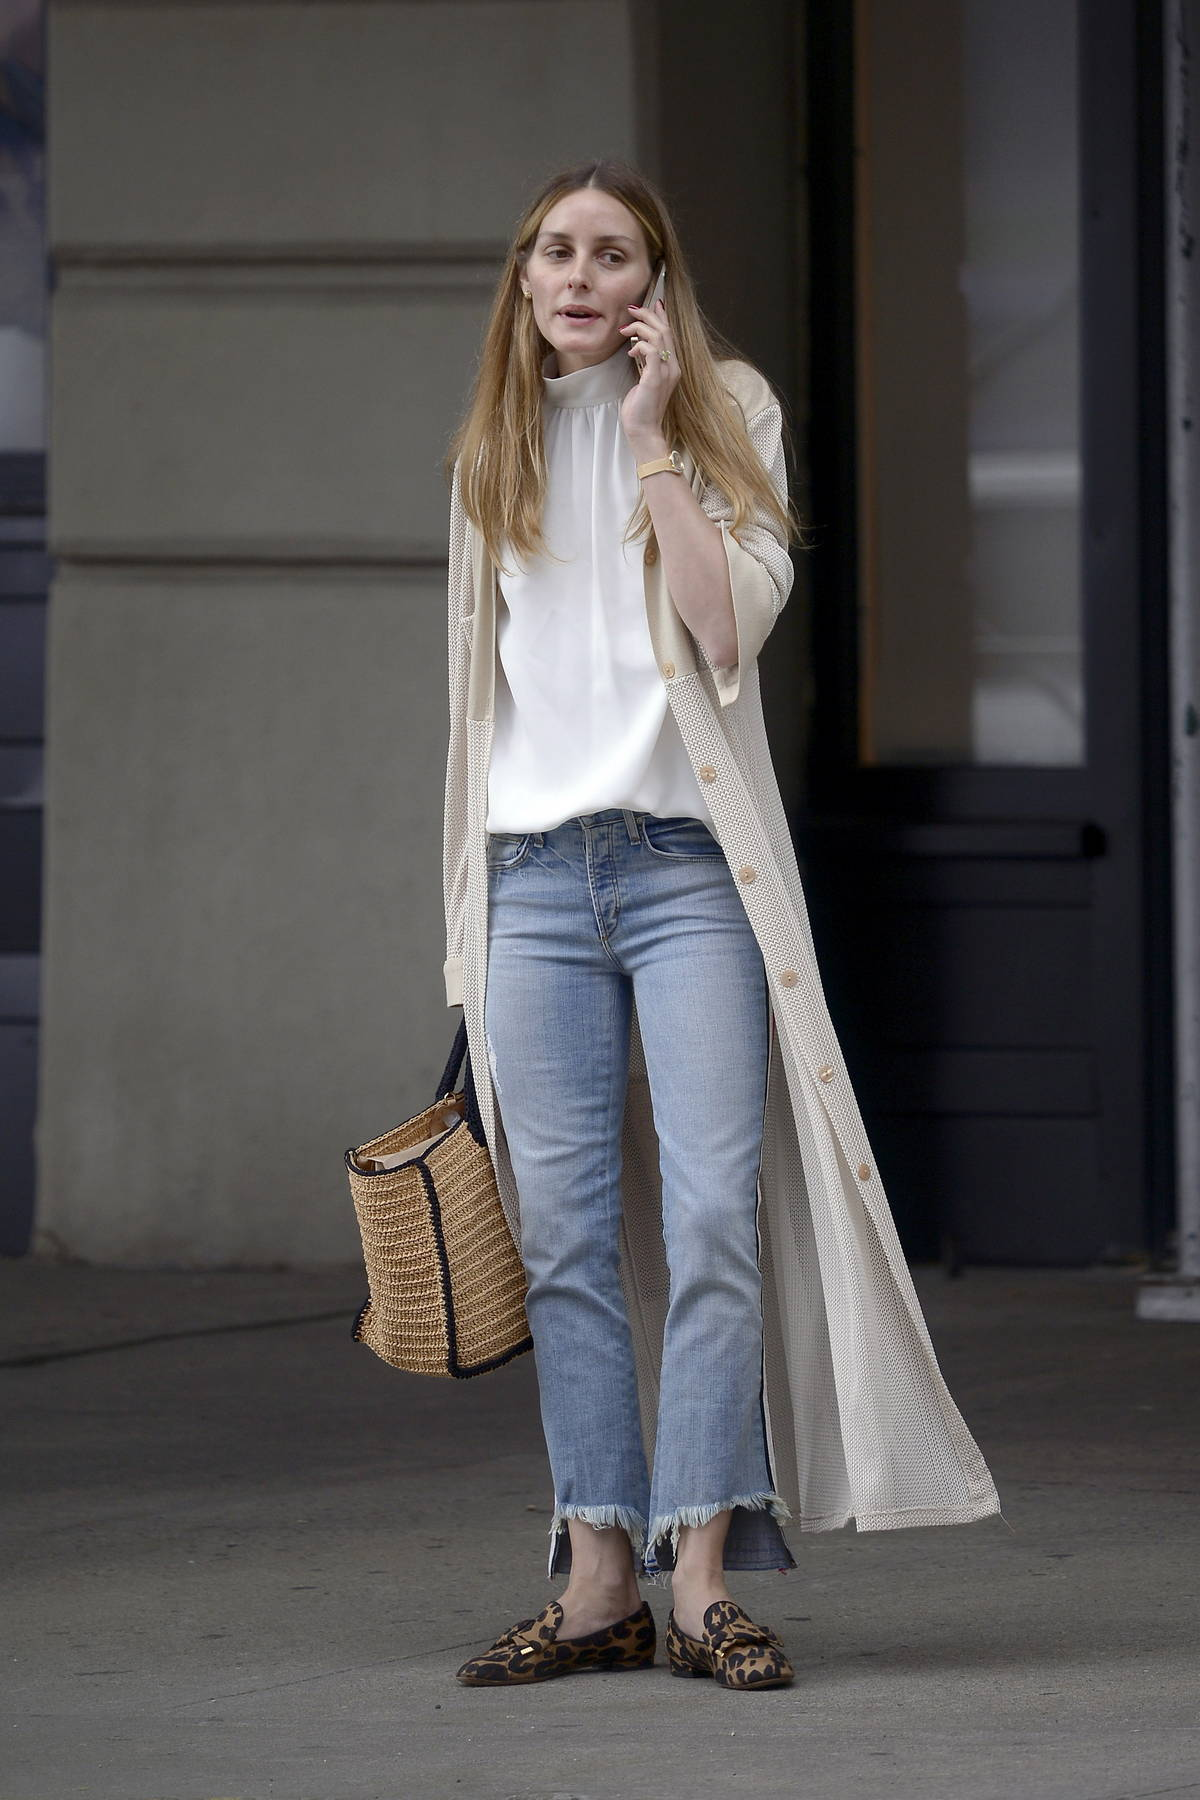 Olivia Palermo looks chic as ever while stepping out in New York City